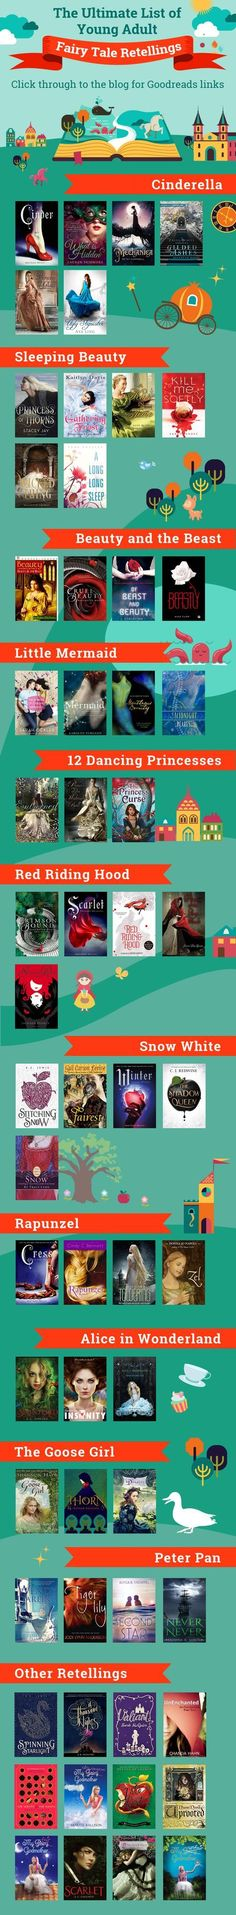 The Ultimate Book List of Young Adult Fairy Tale Retellings. Books include Cinderella, Sleeping Beauty, Beauty and the Beast, The Little Mermaid, The 12 Dancing Princesses, Little Red Riding Hood, Snow White, Rapunzel, Alice in Wonderland, The Goose Girl, and Peter Pan. #Snow